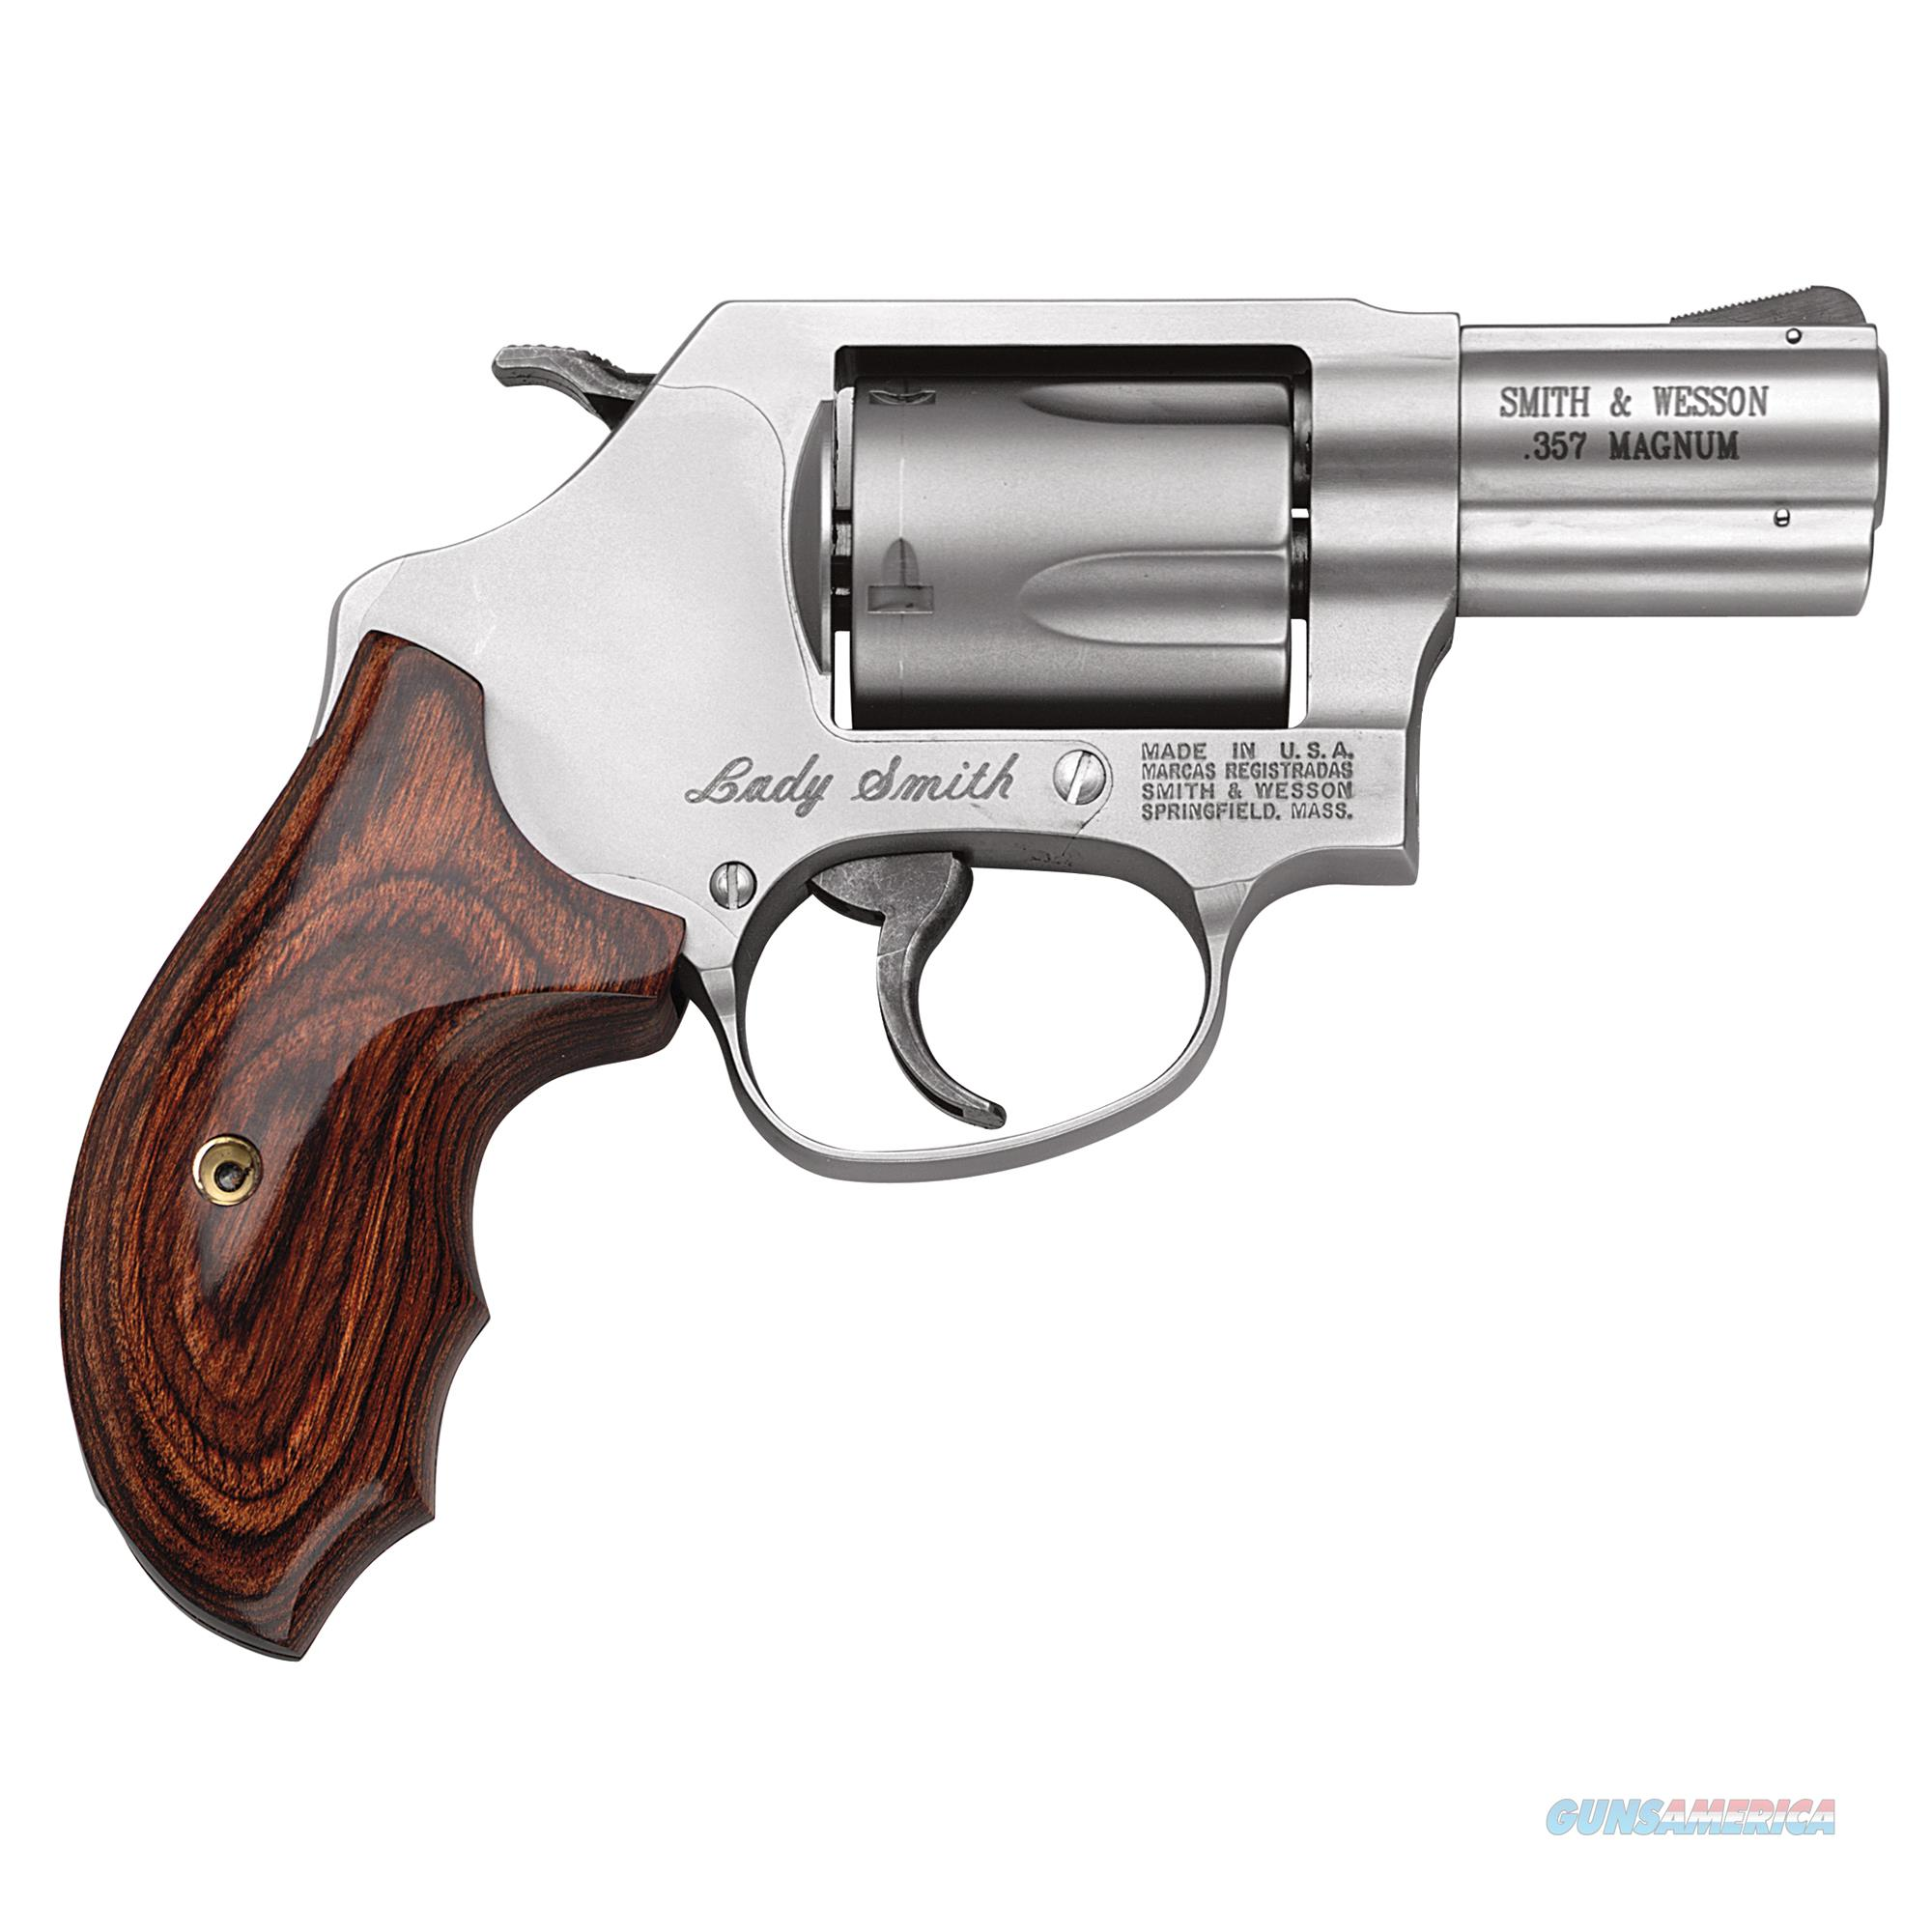 S&W MODEL 60 LADYSMITH - 357MAGNUM /38Spl + P MODEL 162414  Guns > Pistols > Smith & Wesson Revolvers > Pocket Pistols